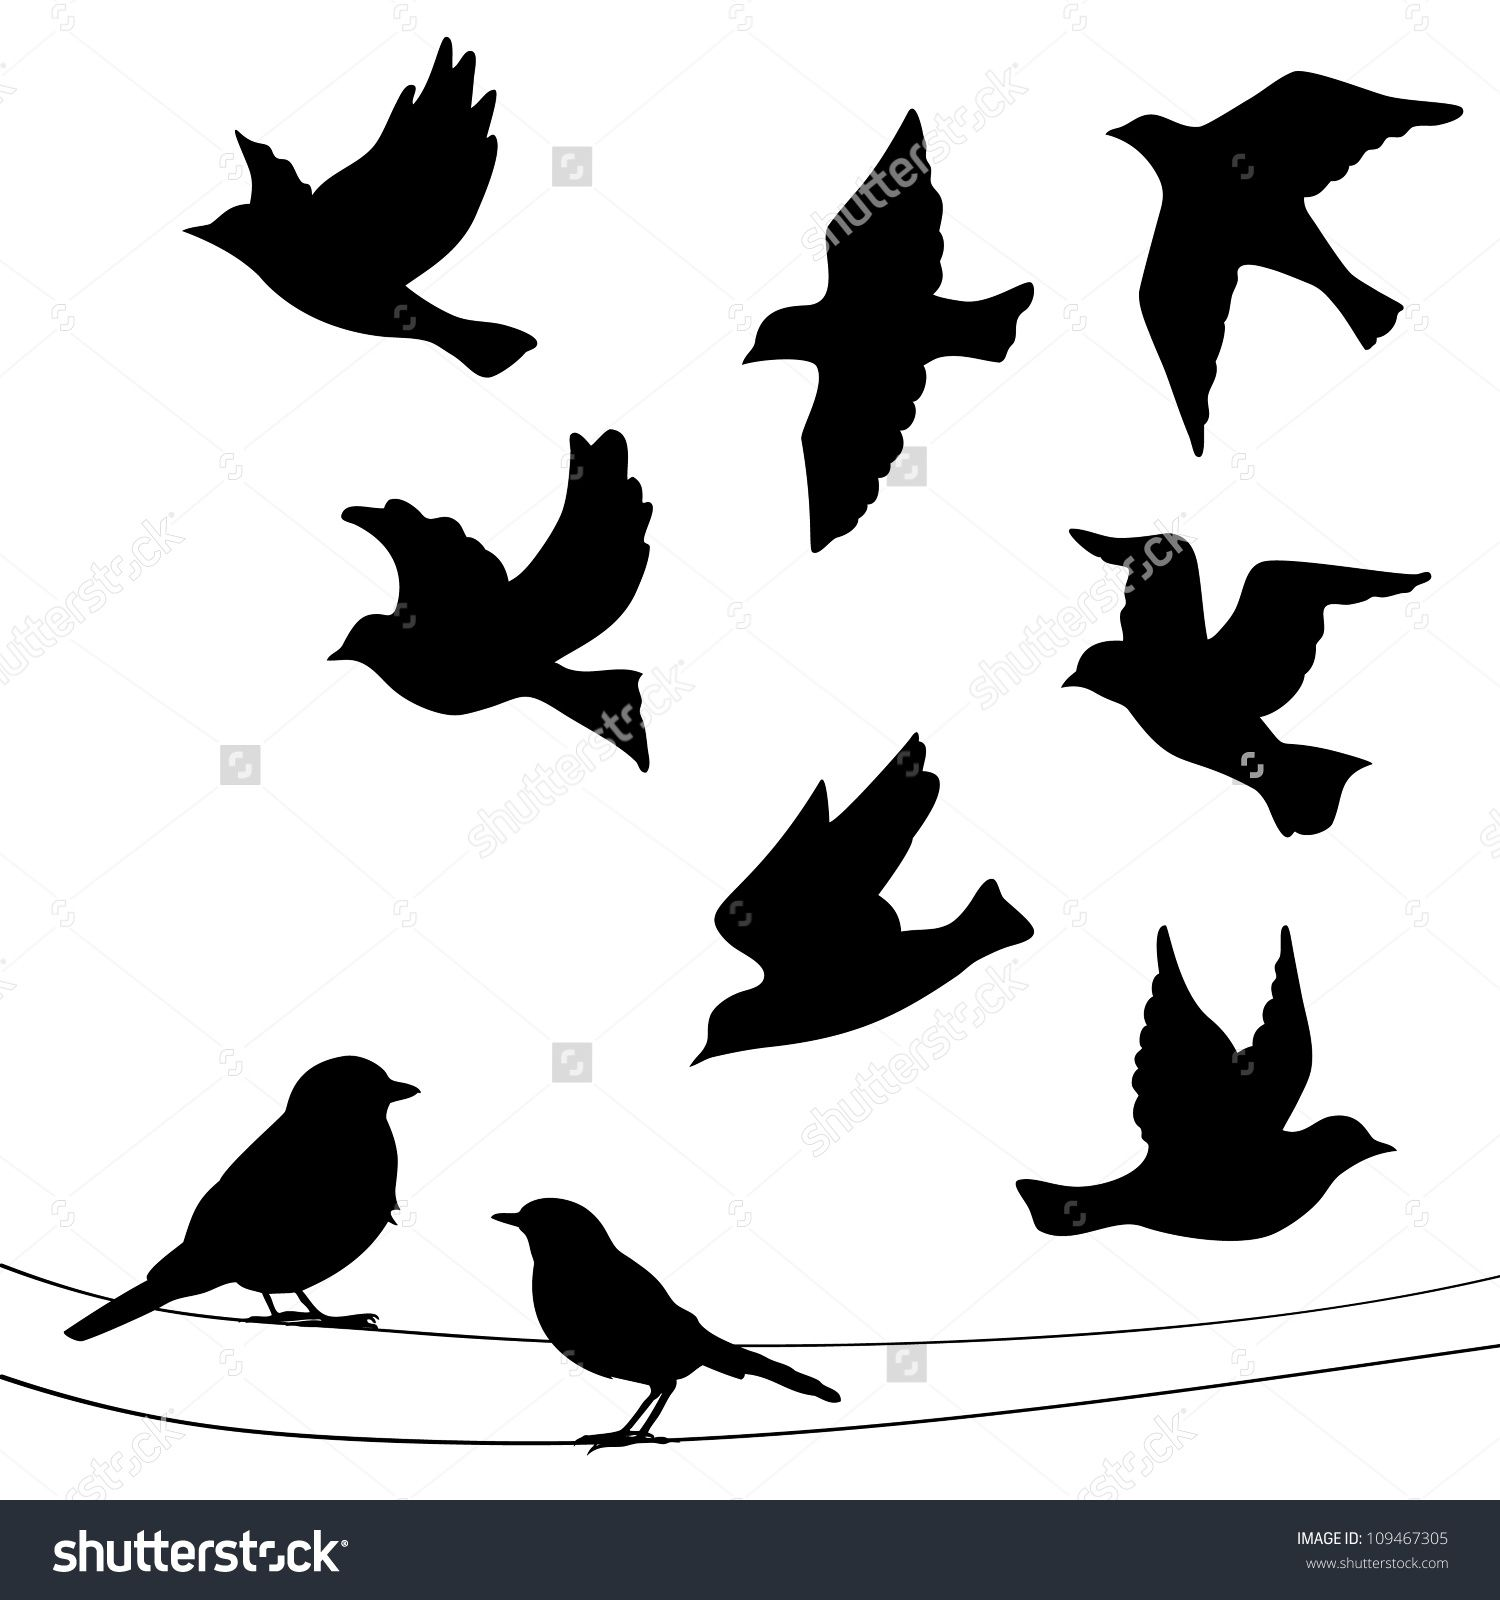 stock vector set of birds silhouettes flying sitting